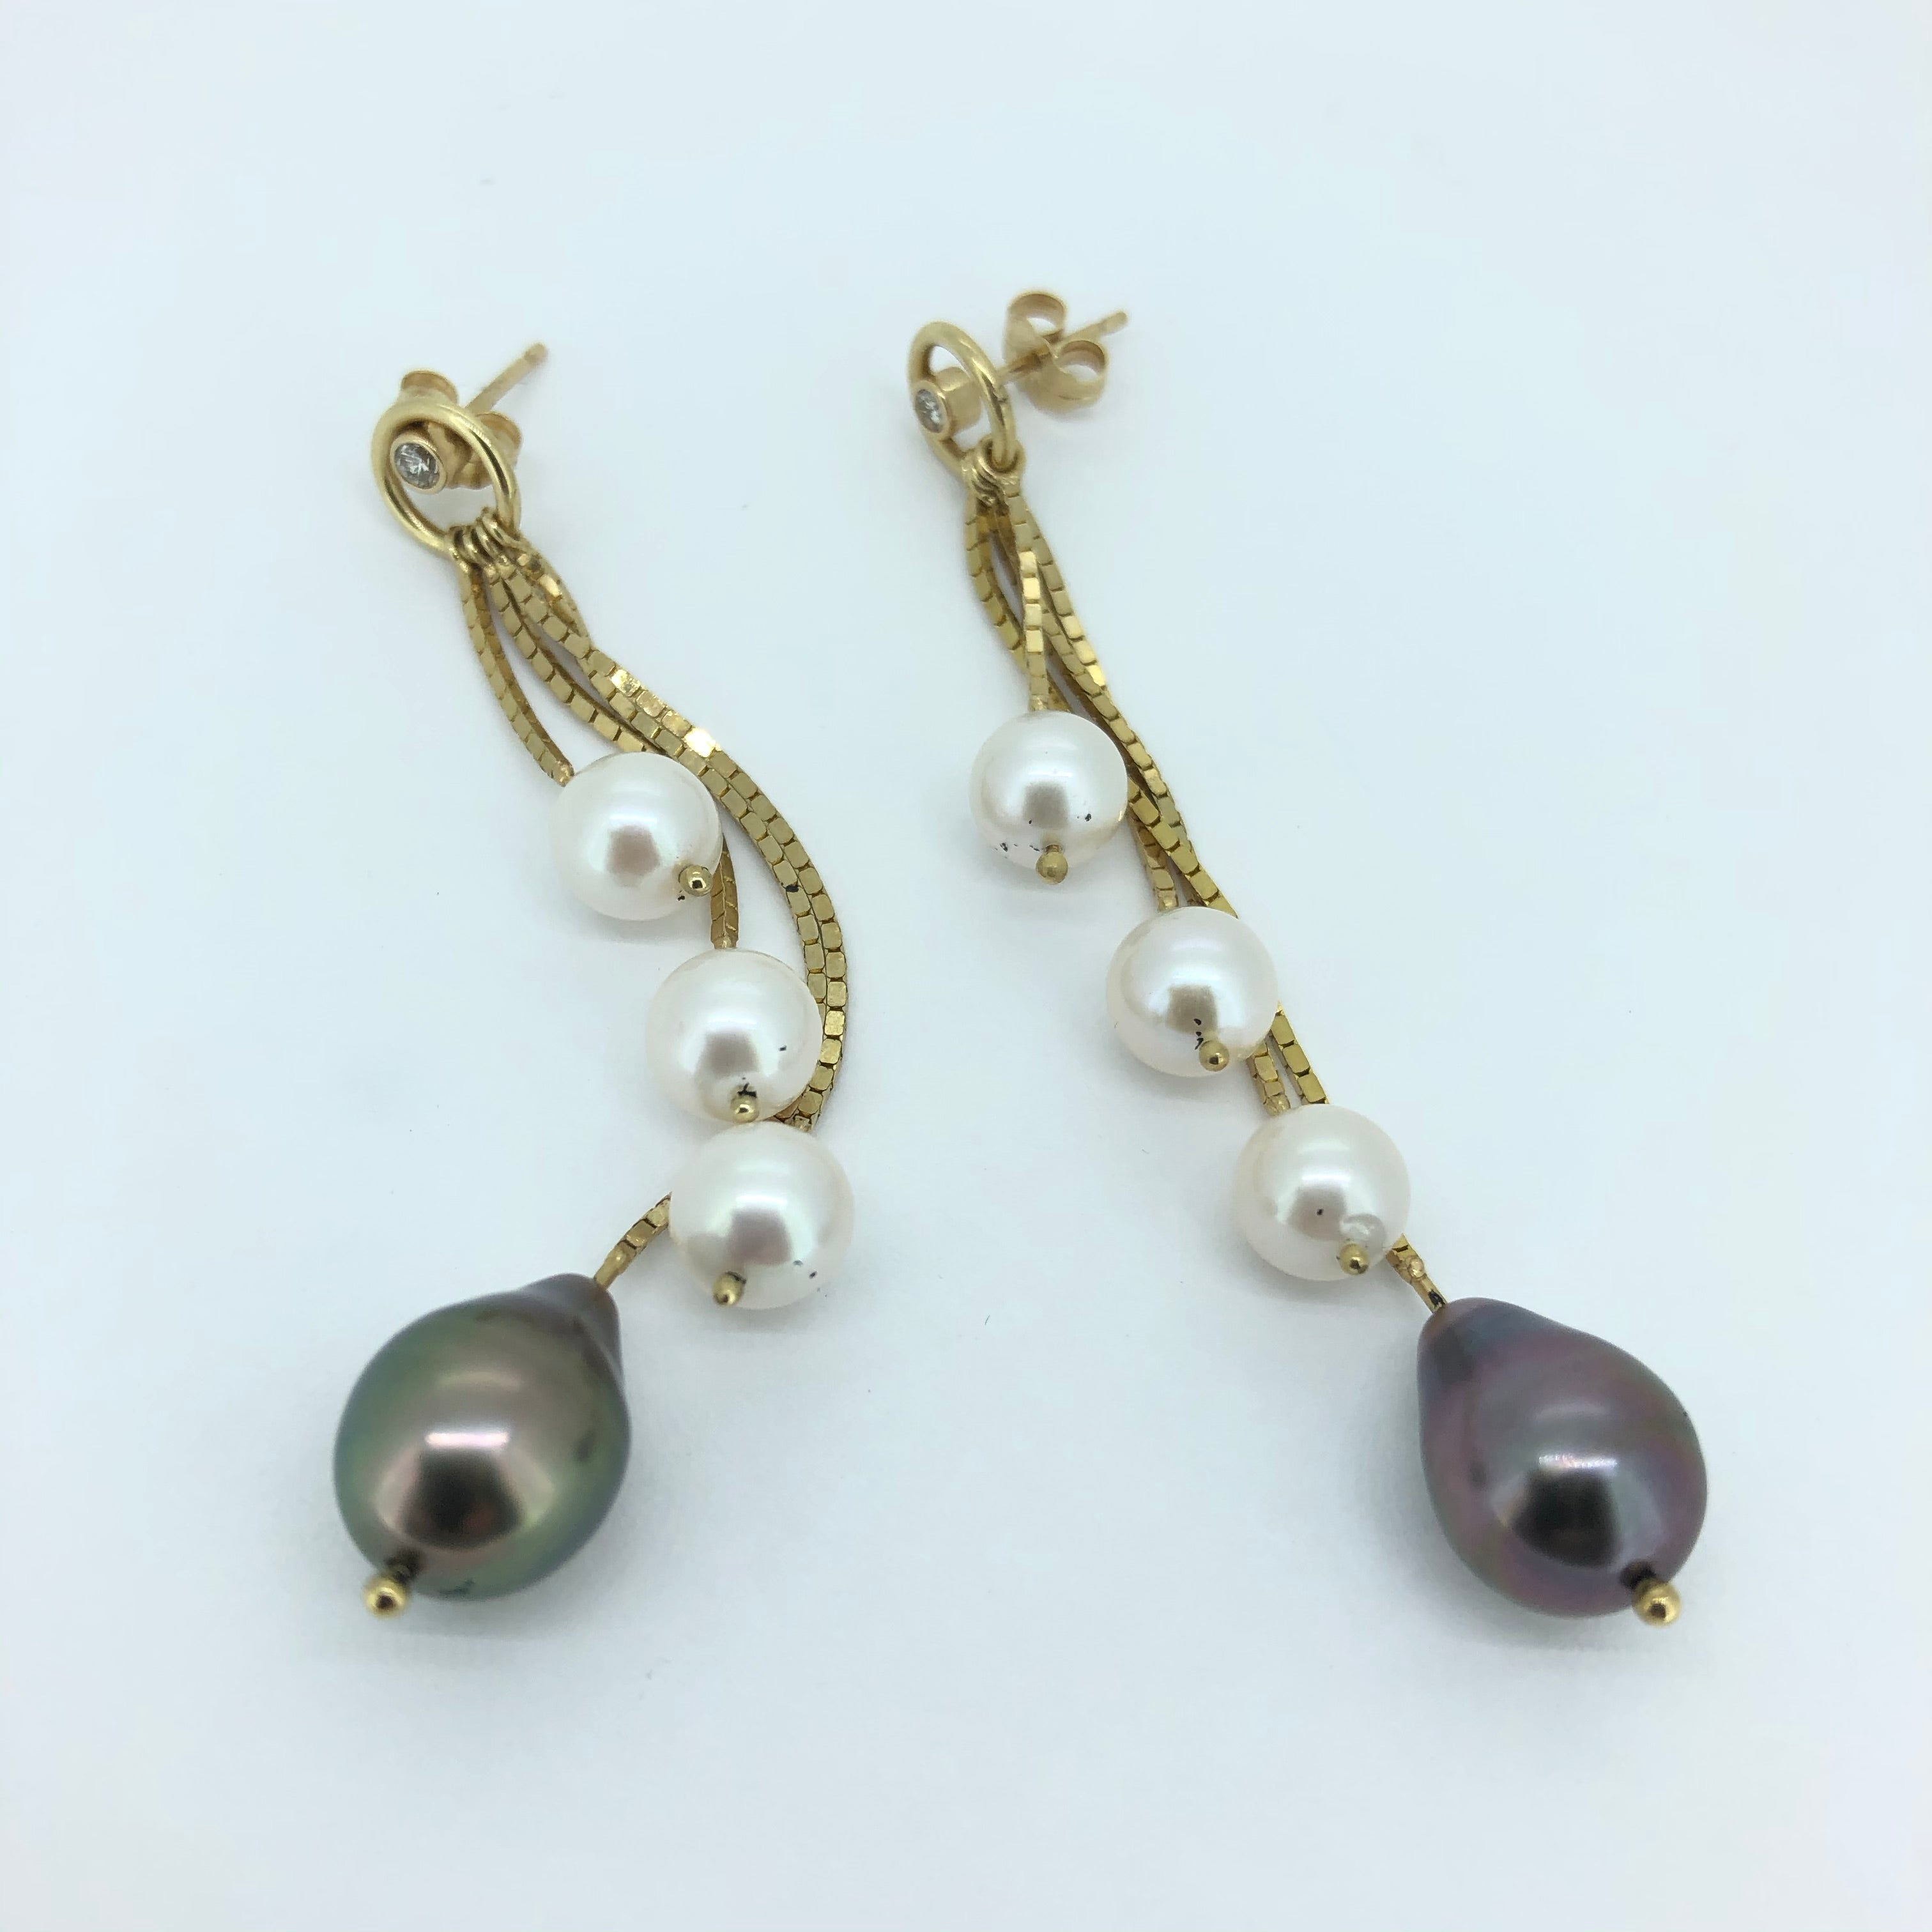 Pearl and 14k yellow gold earrings.